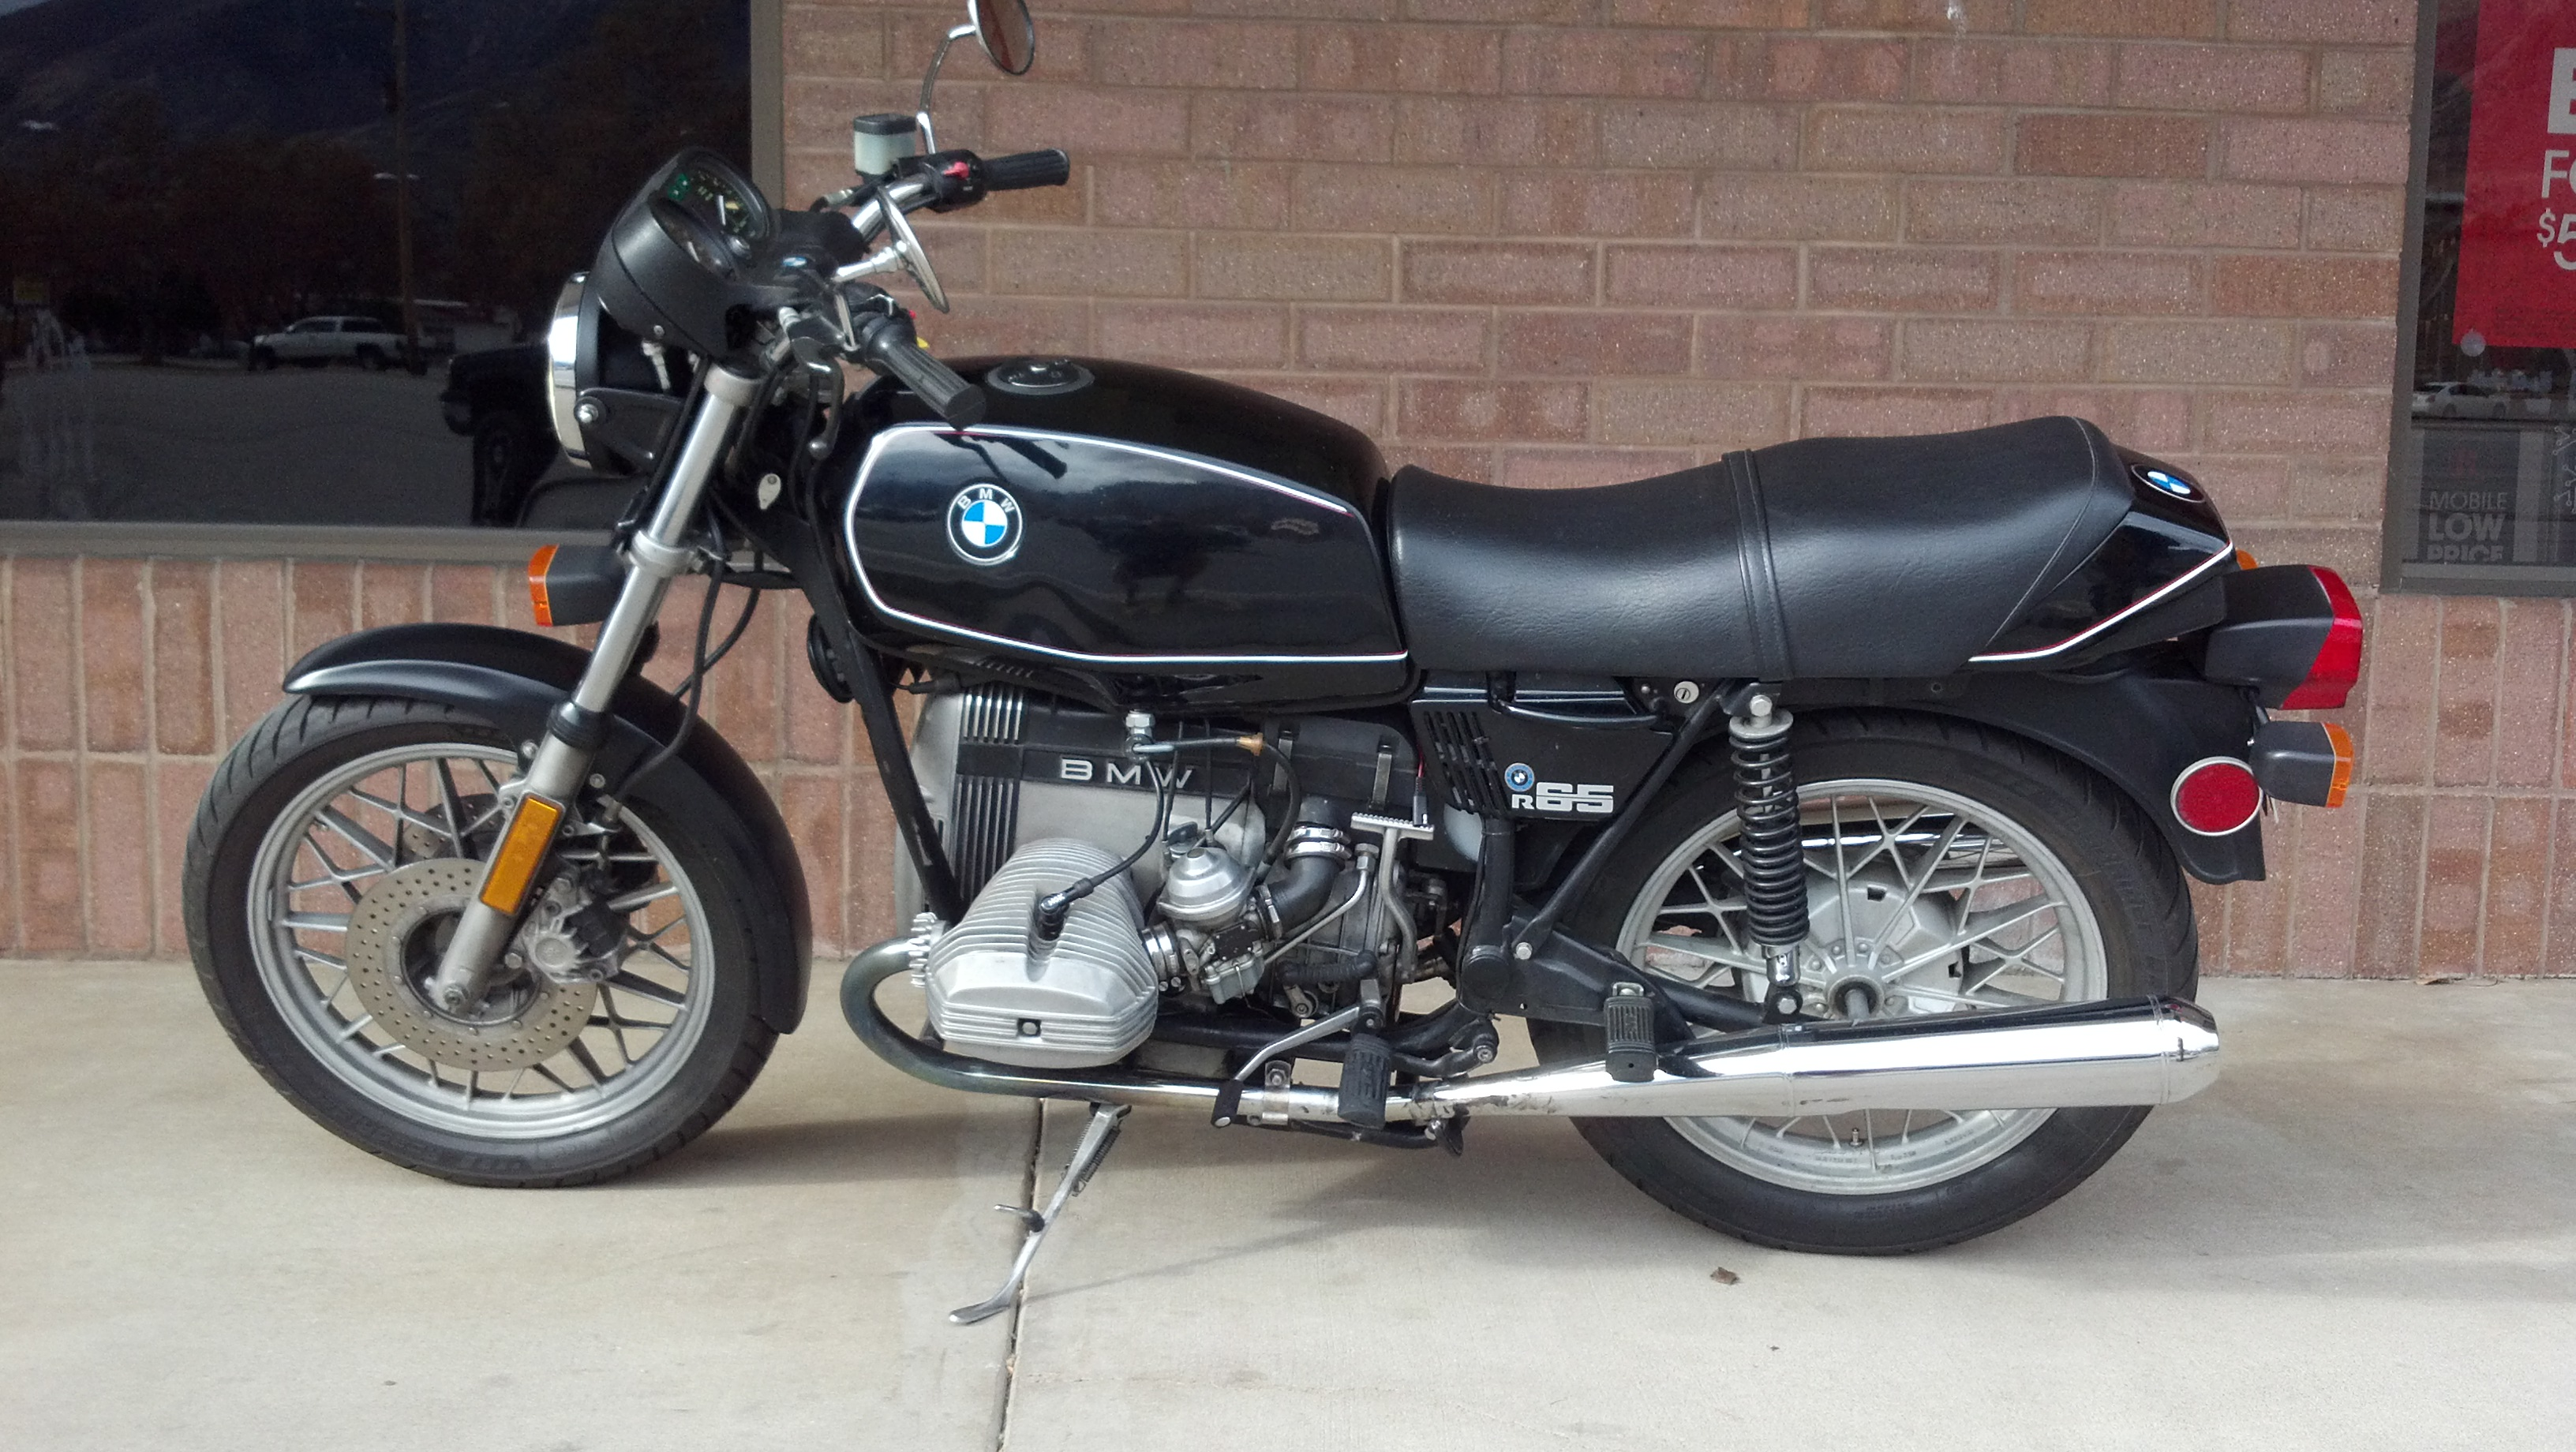 BMW R65 (reduced effect) 1988 images #77182